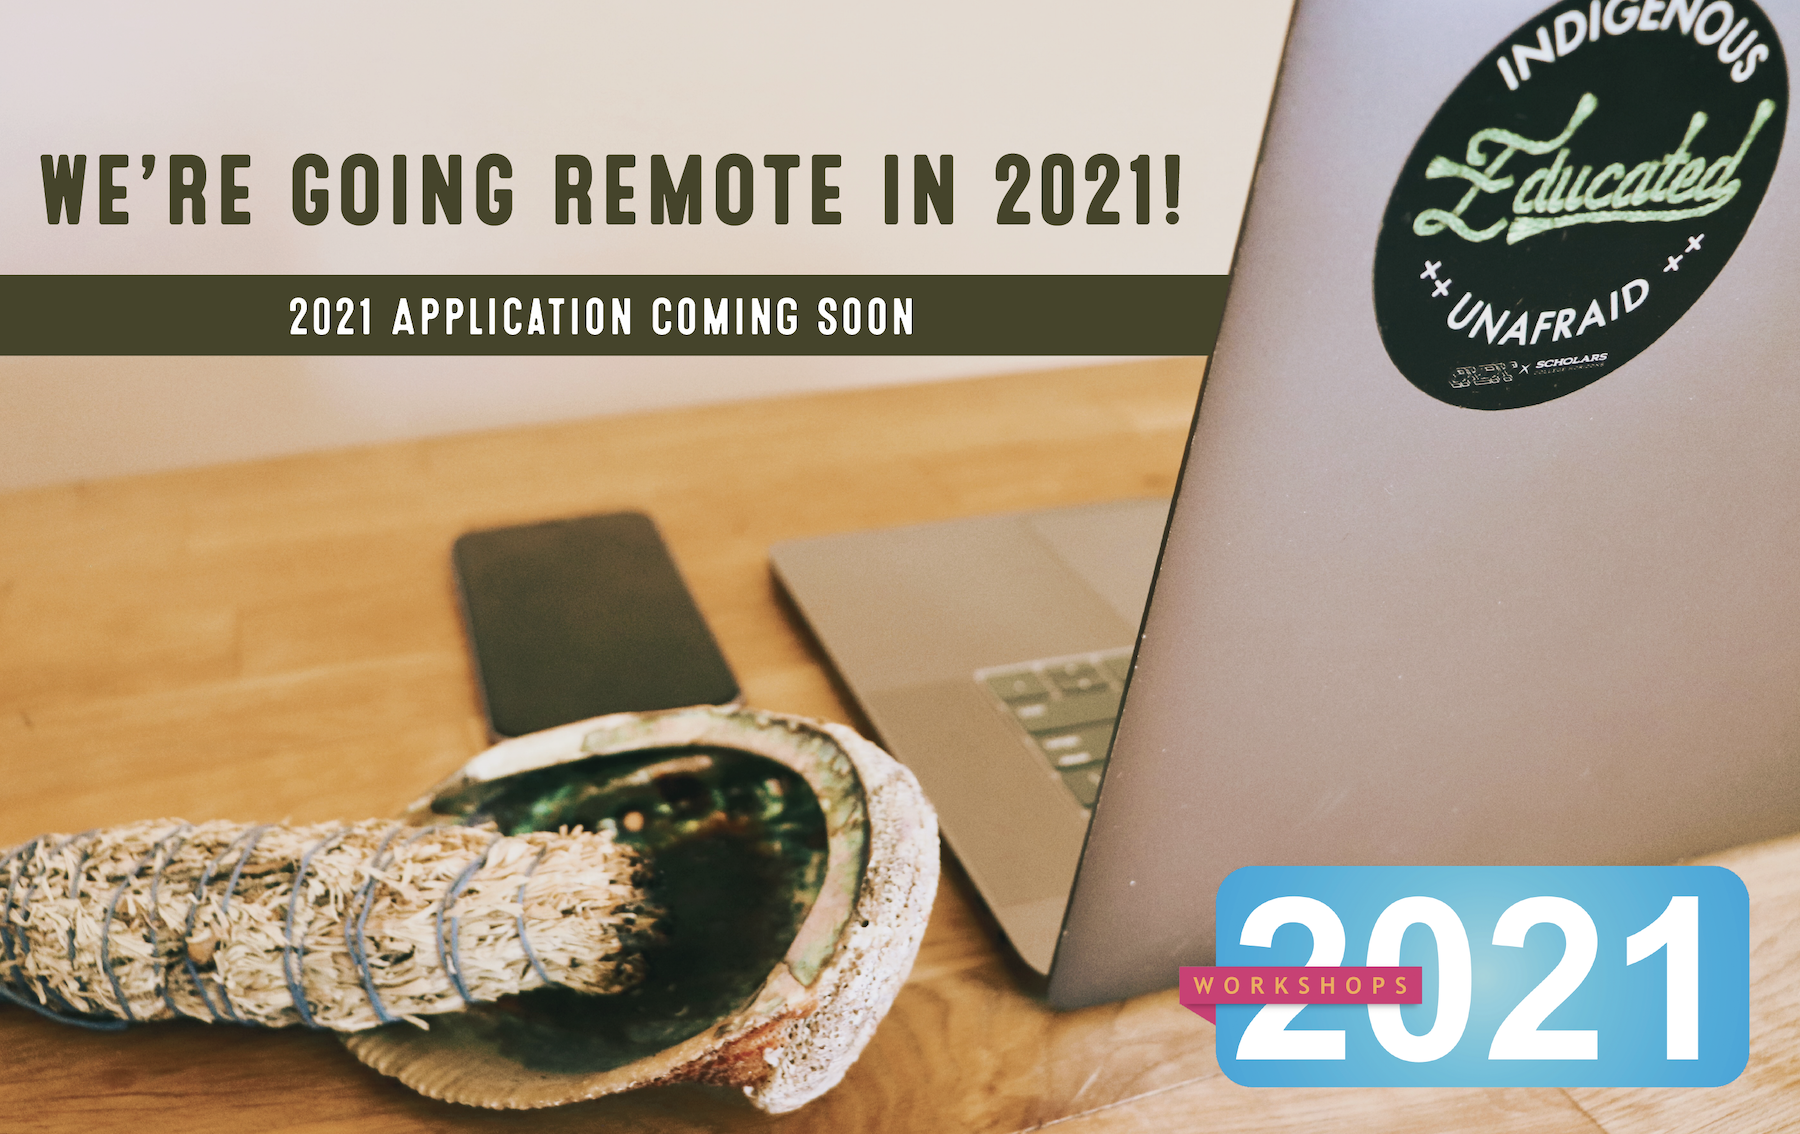 College Horizons - We're Going Remote in 2021!